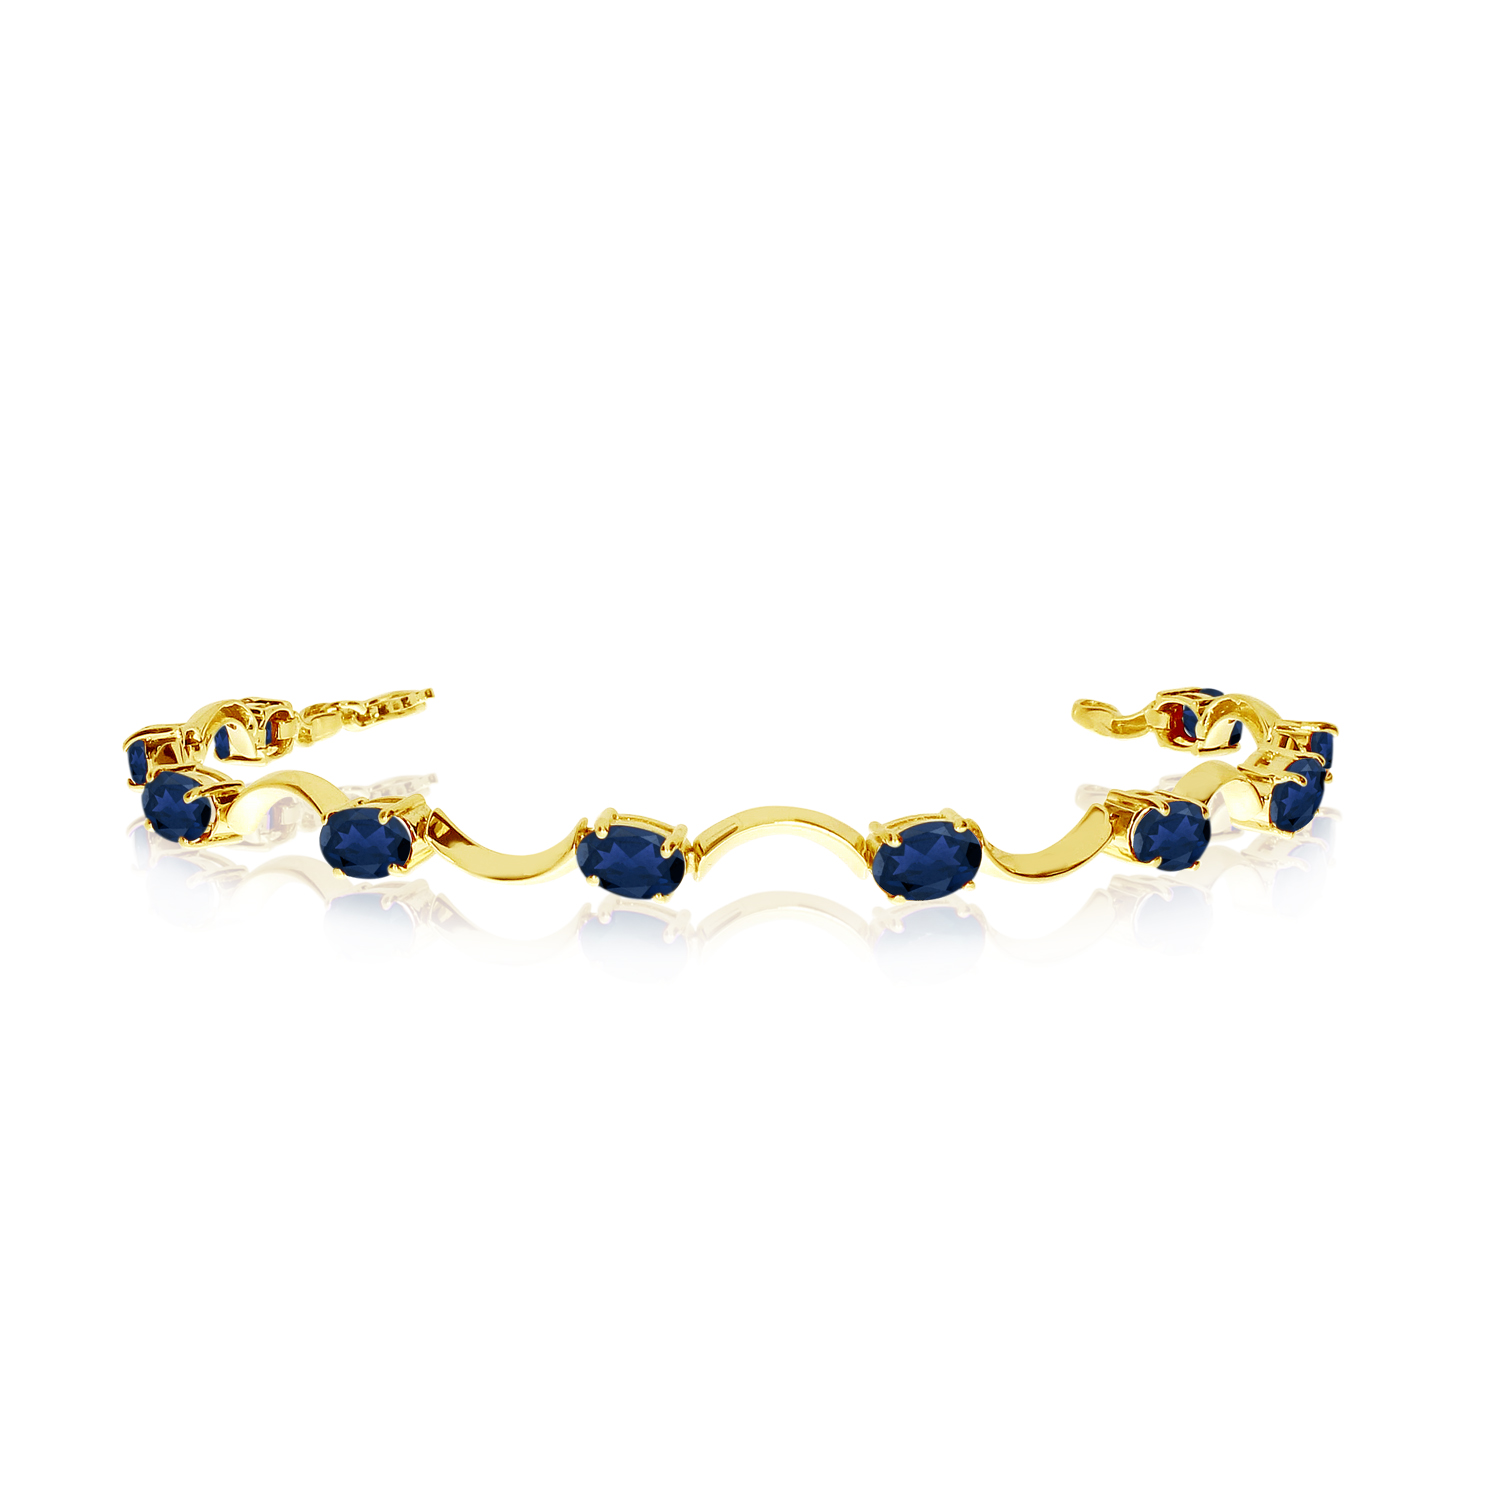 14K Yellow Gold Oval Sapphire Curved Bar Bracelet by